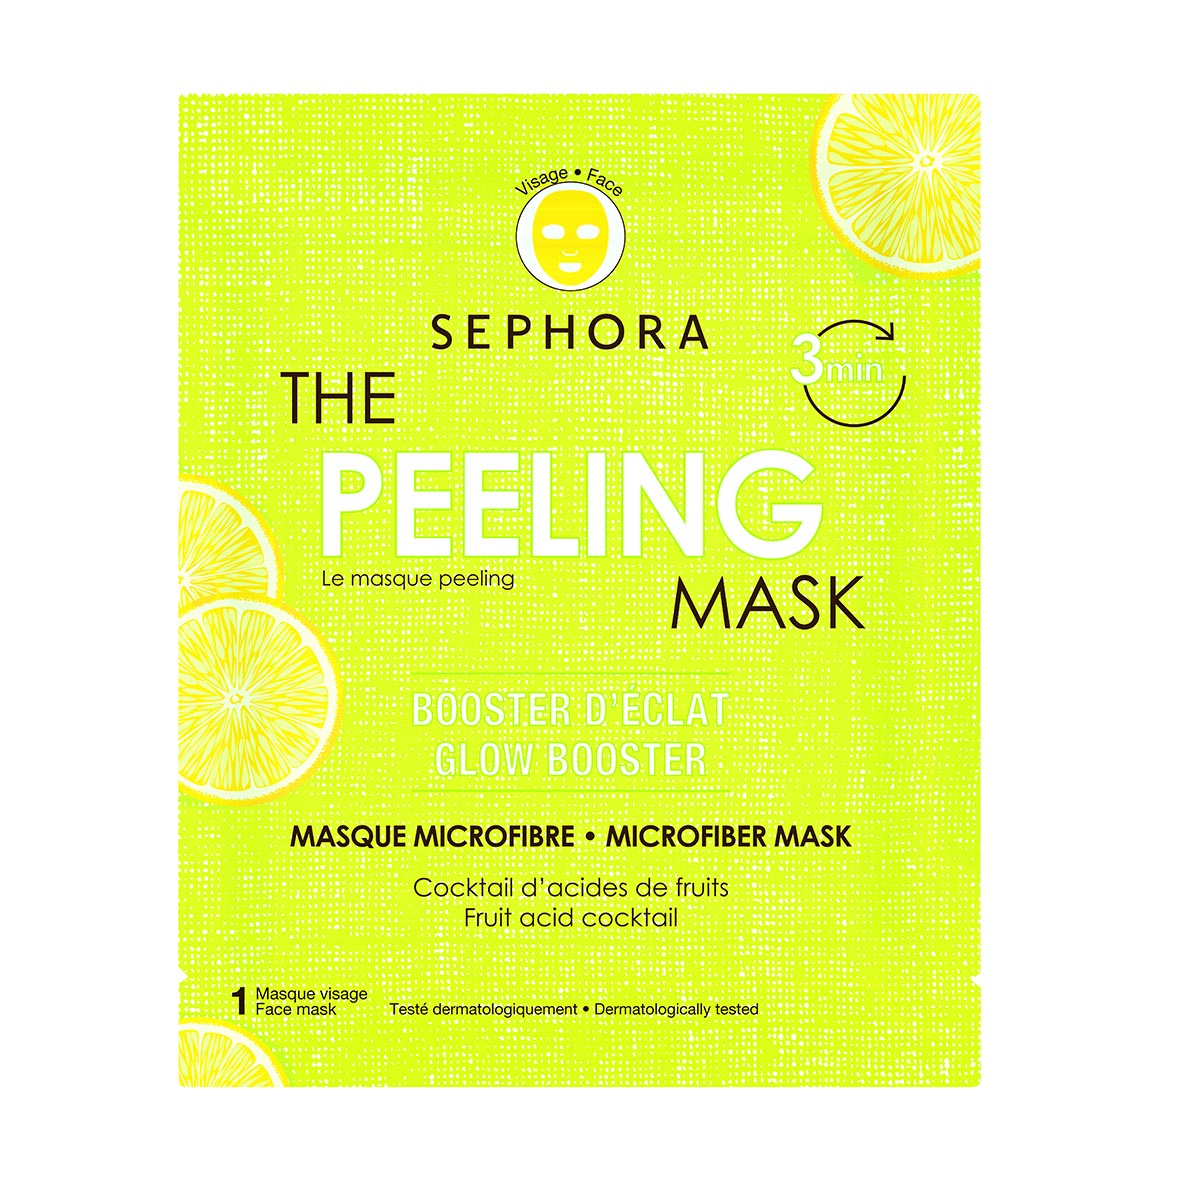 HERO PEELING MASK (MASCARILLA)